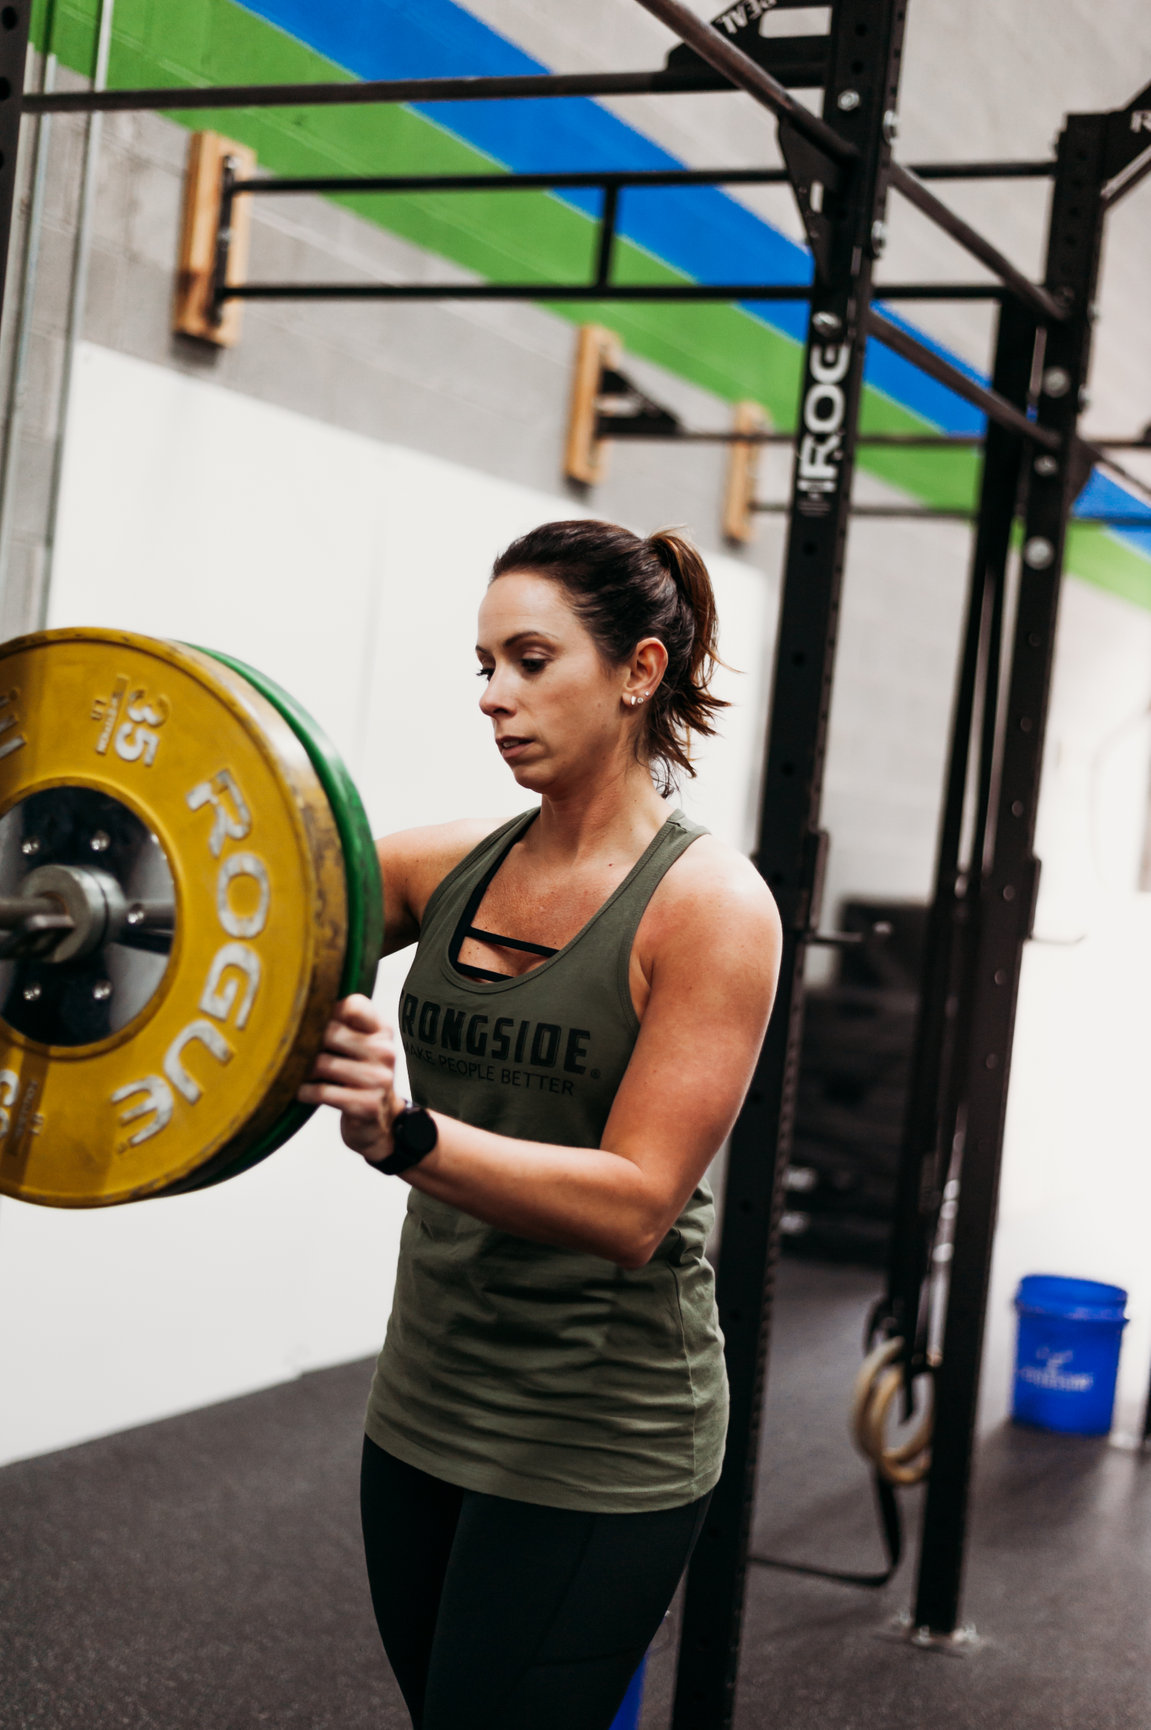 STRONGSIDE BARBELL: 5.18.20 – 5.24.20